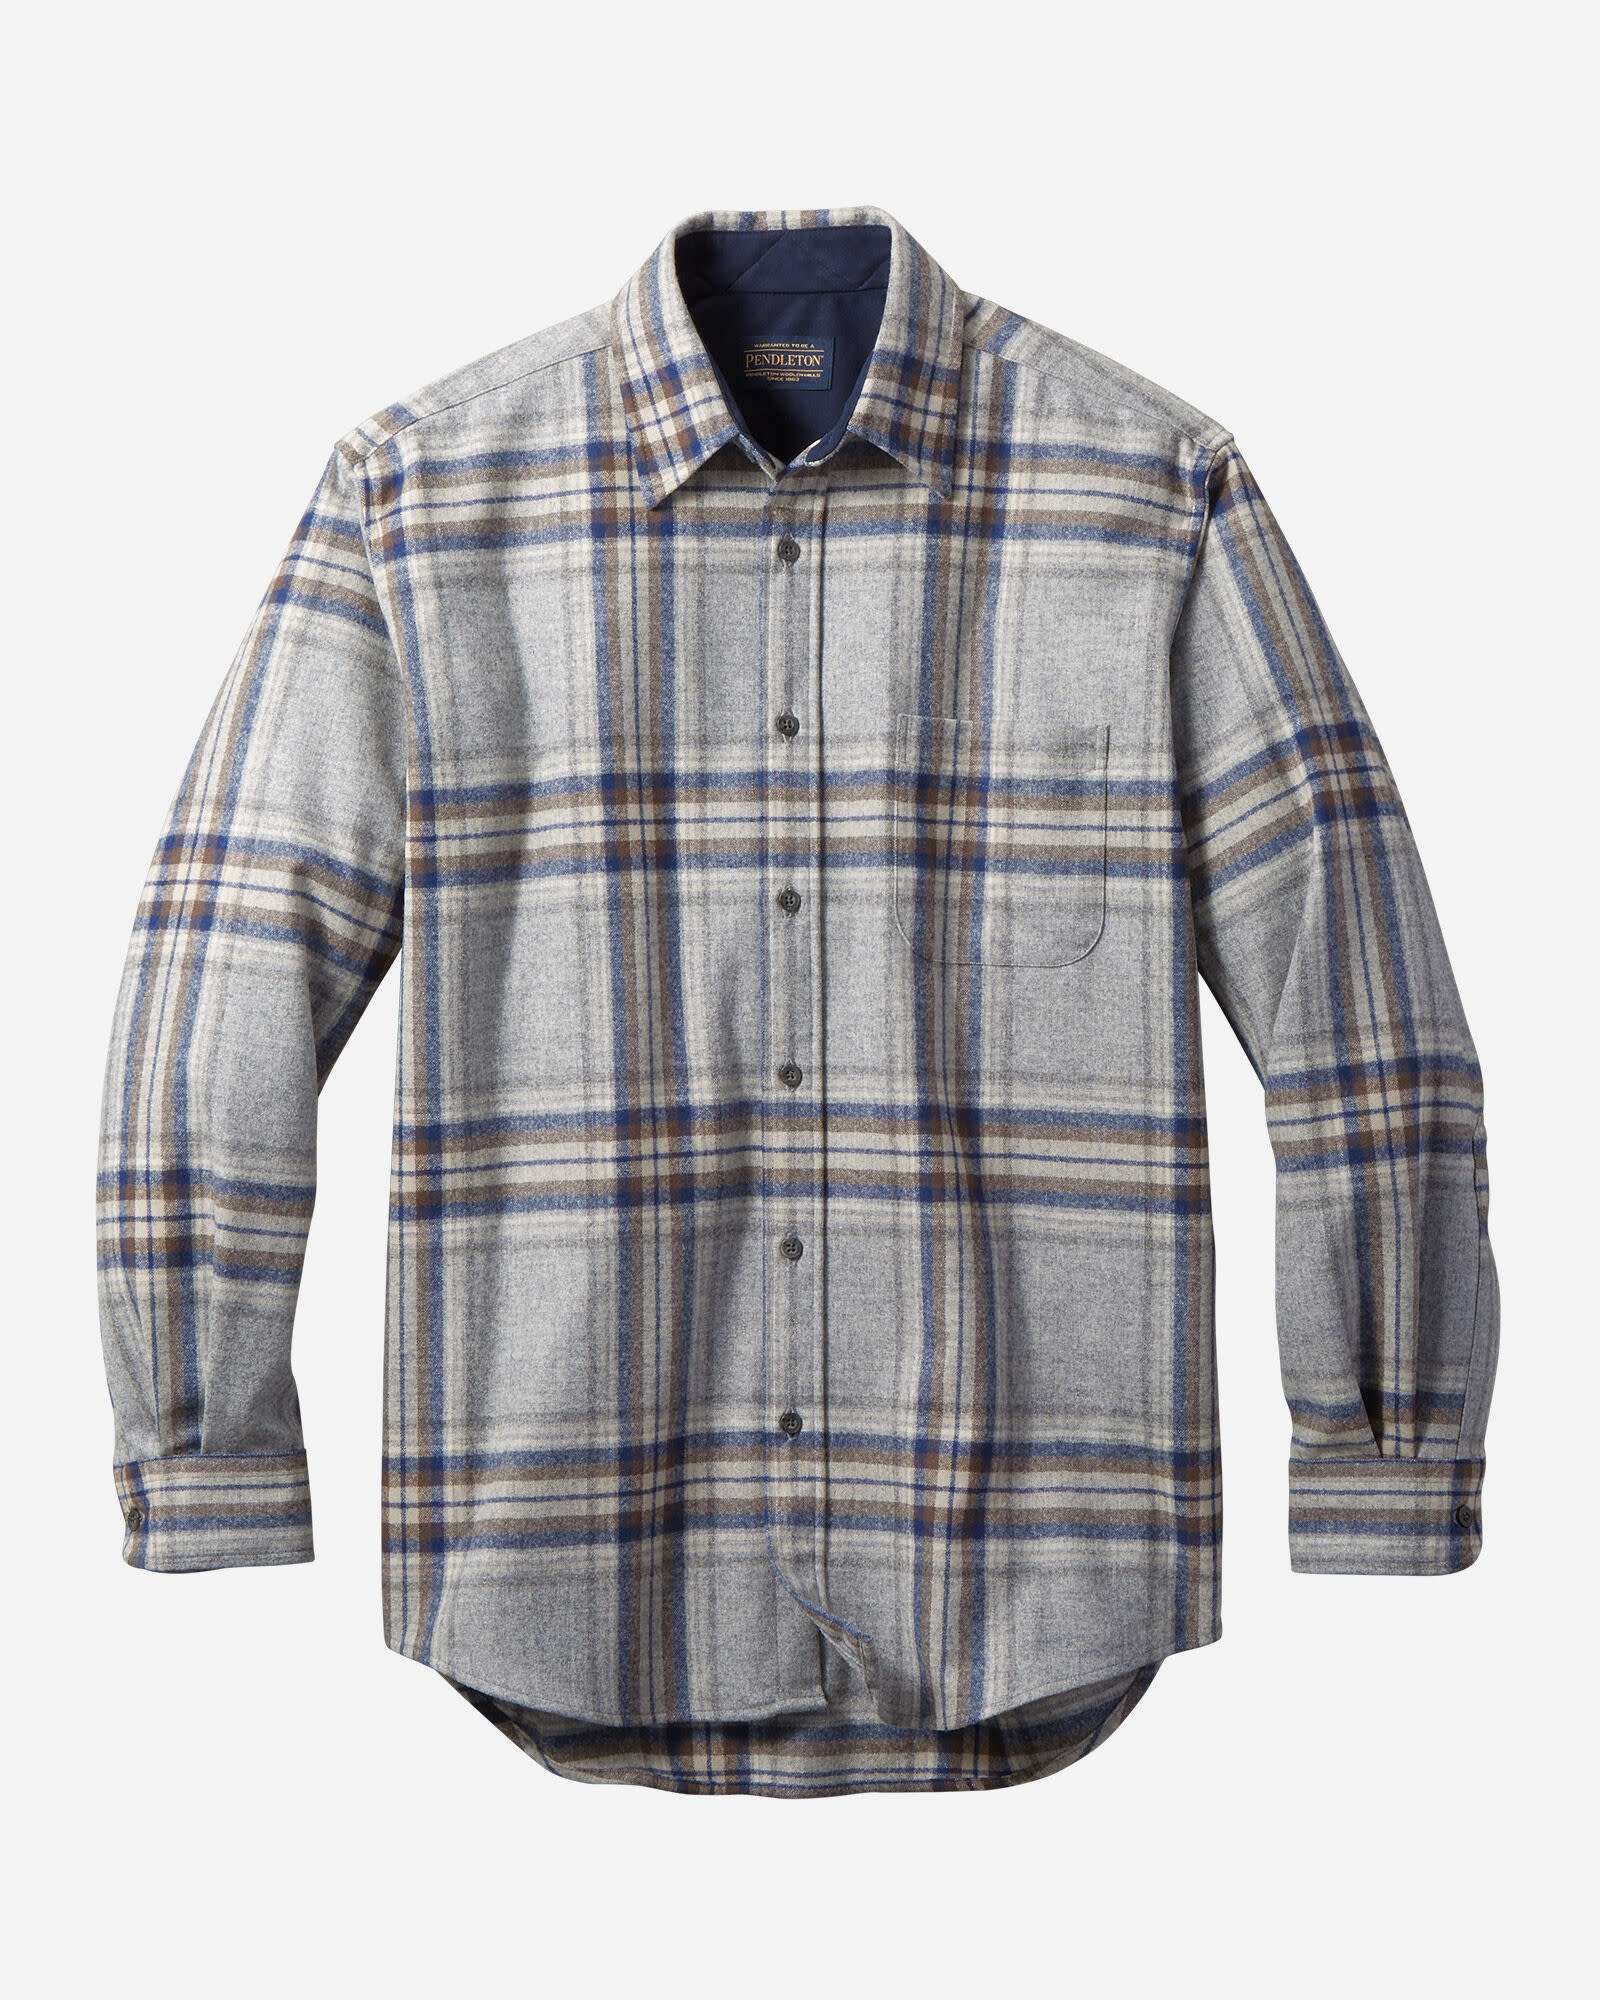 PENDLETON PENDLETON LODGE SHIRT